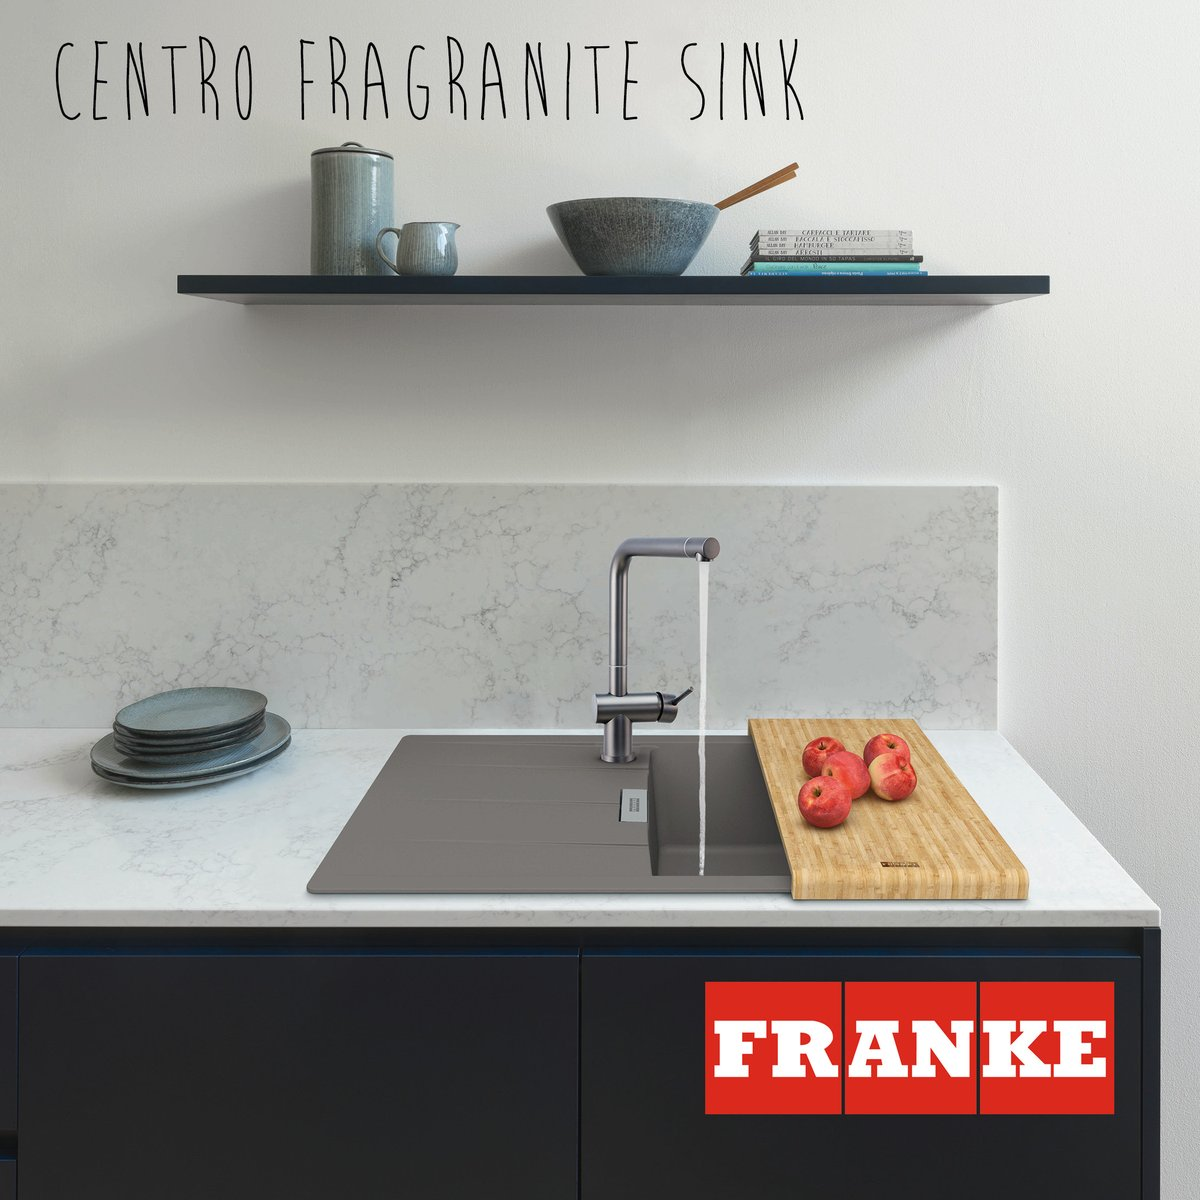 Our Centro Fragranite sink is a stylish and practical addition to kitchens large and small with its roomy single bowl and compact drainer. Available in subtle neutrals, chic greys and striking matt black, which colour will you choose? bit.ly/2NGLOP2